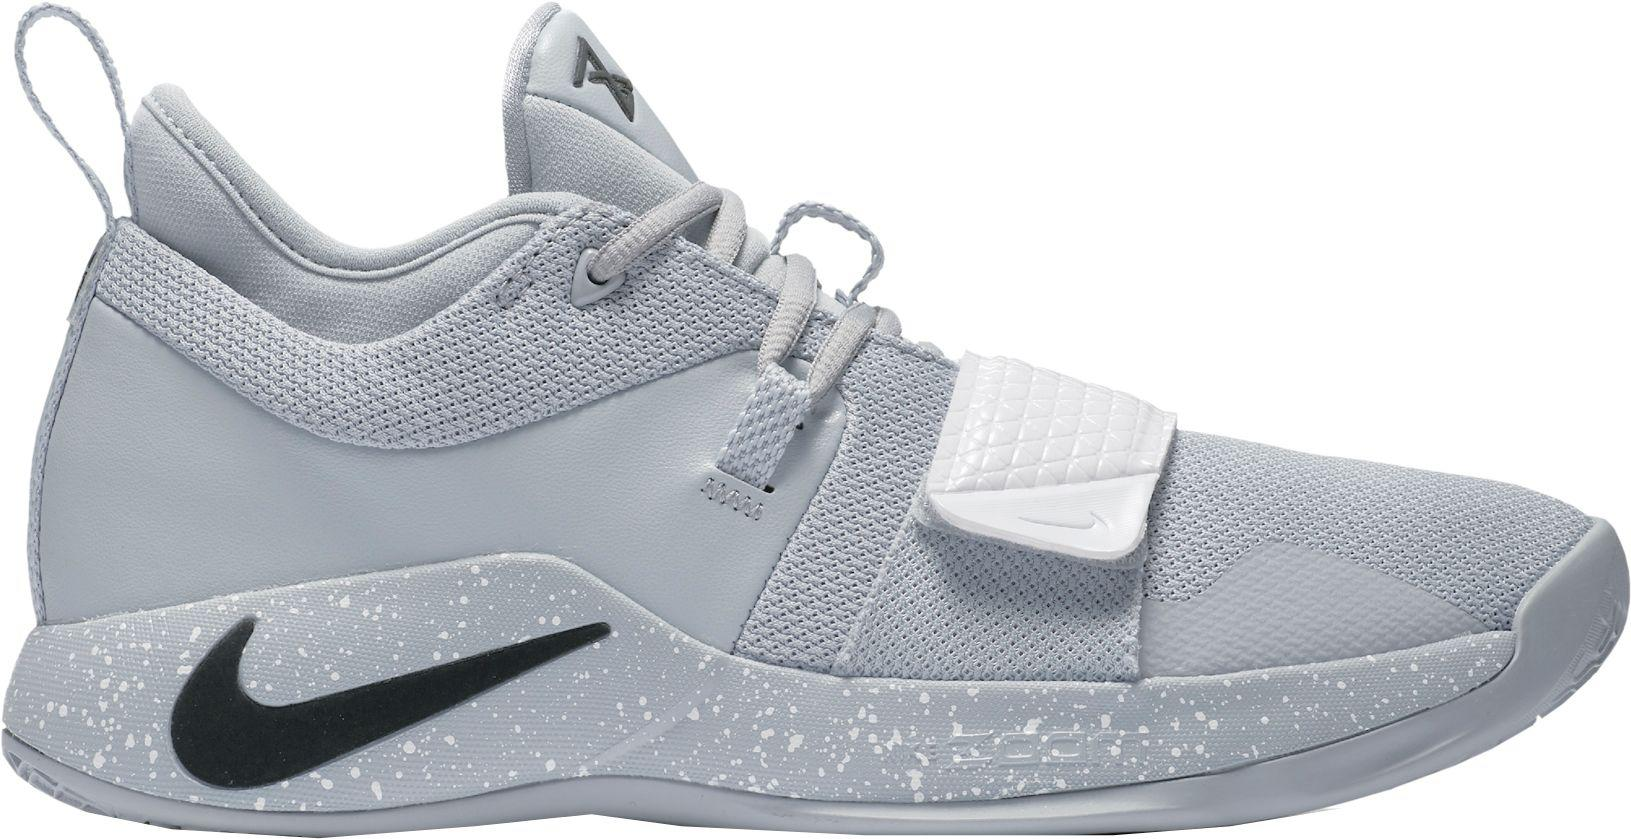 Nike Rubber Pg 2.5 Basketball Shoes in